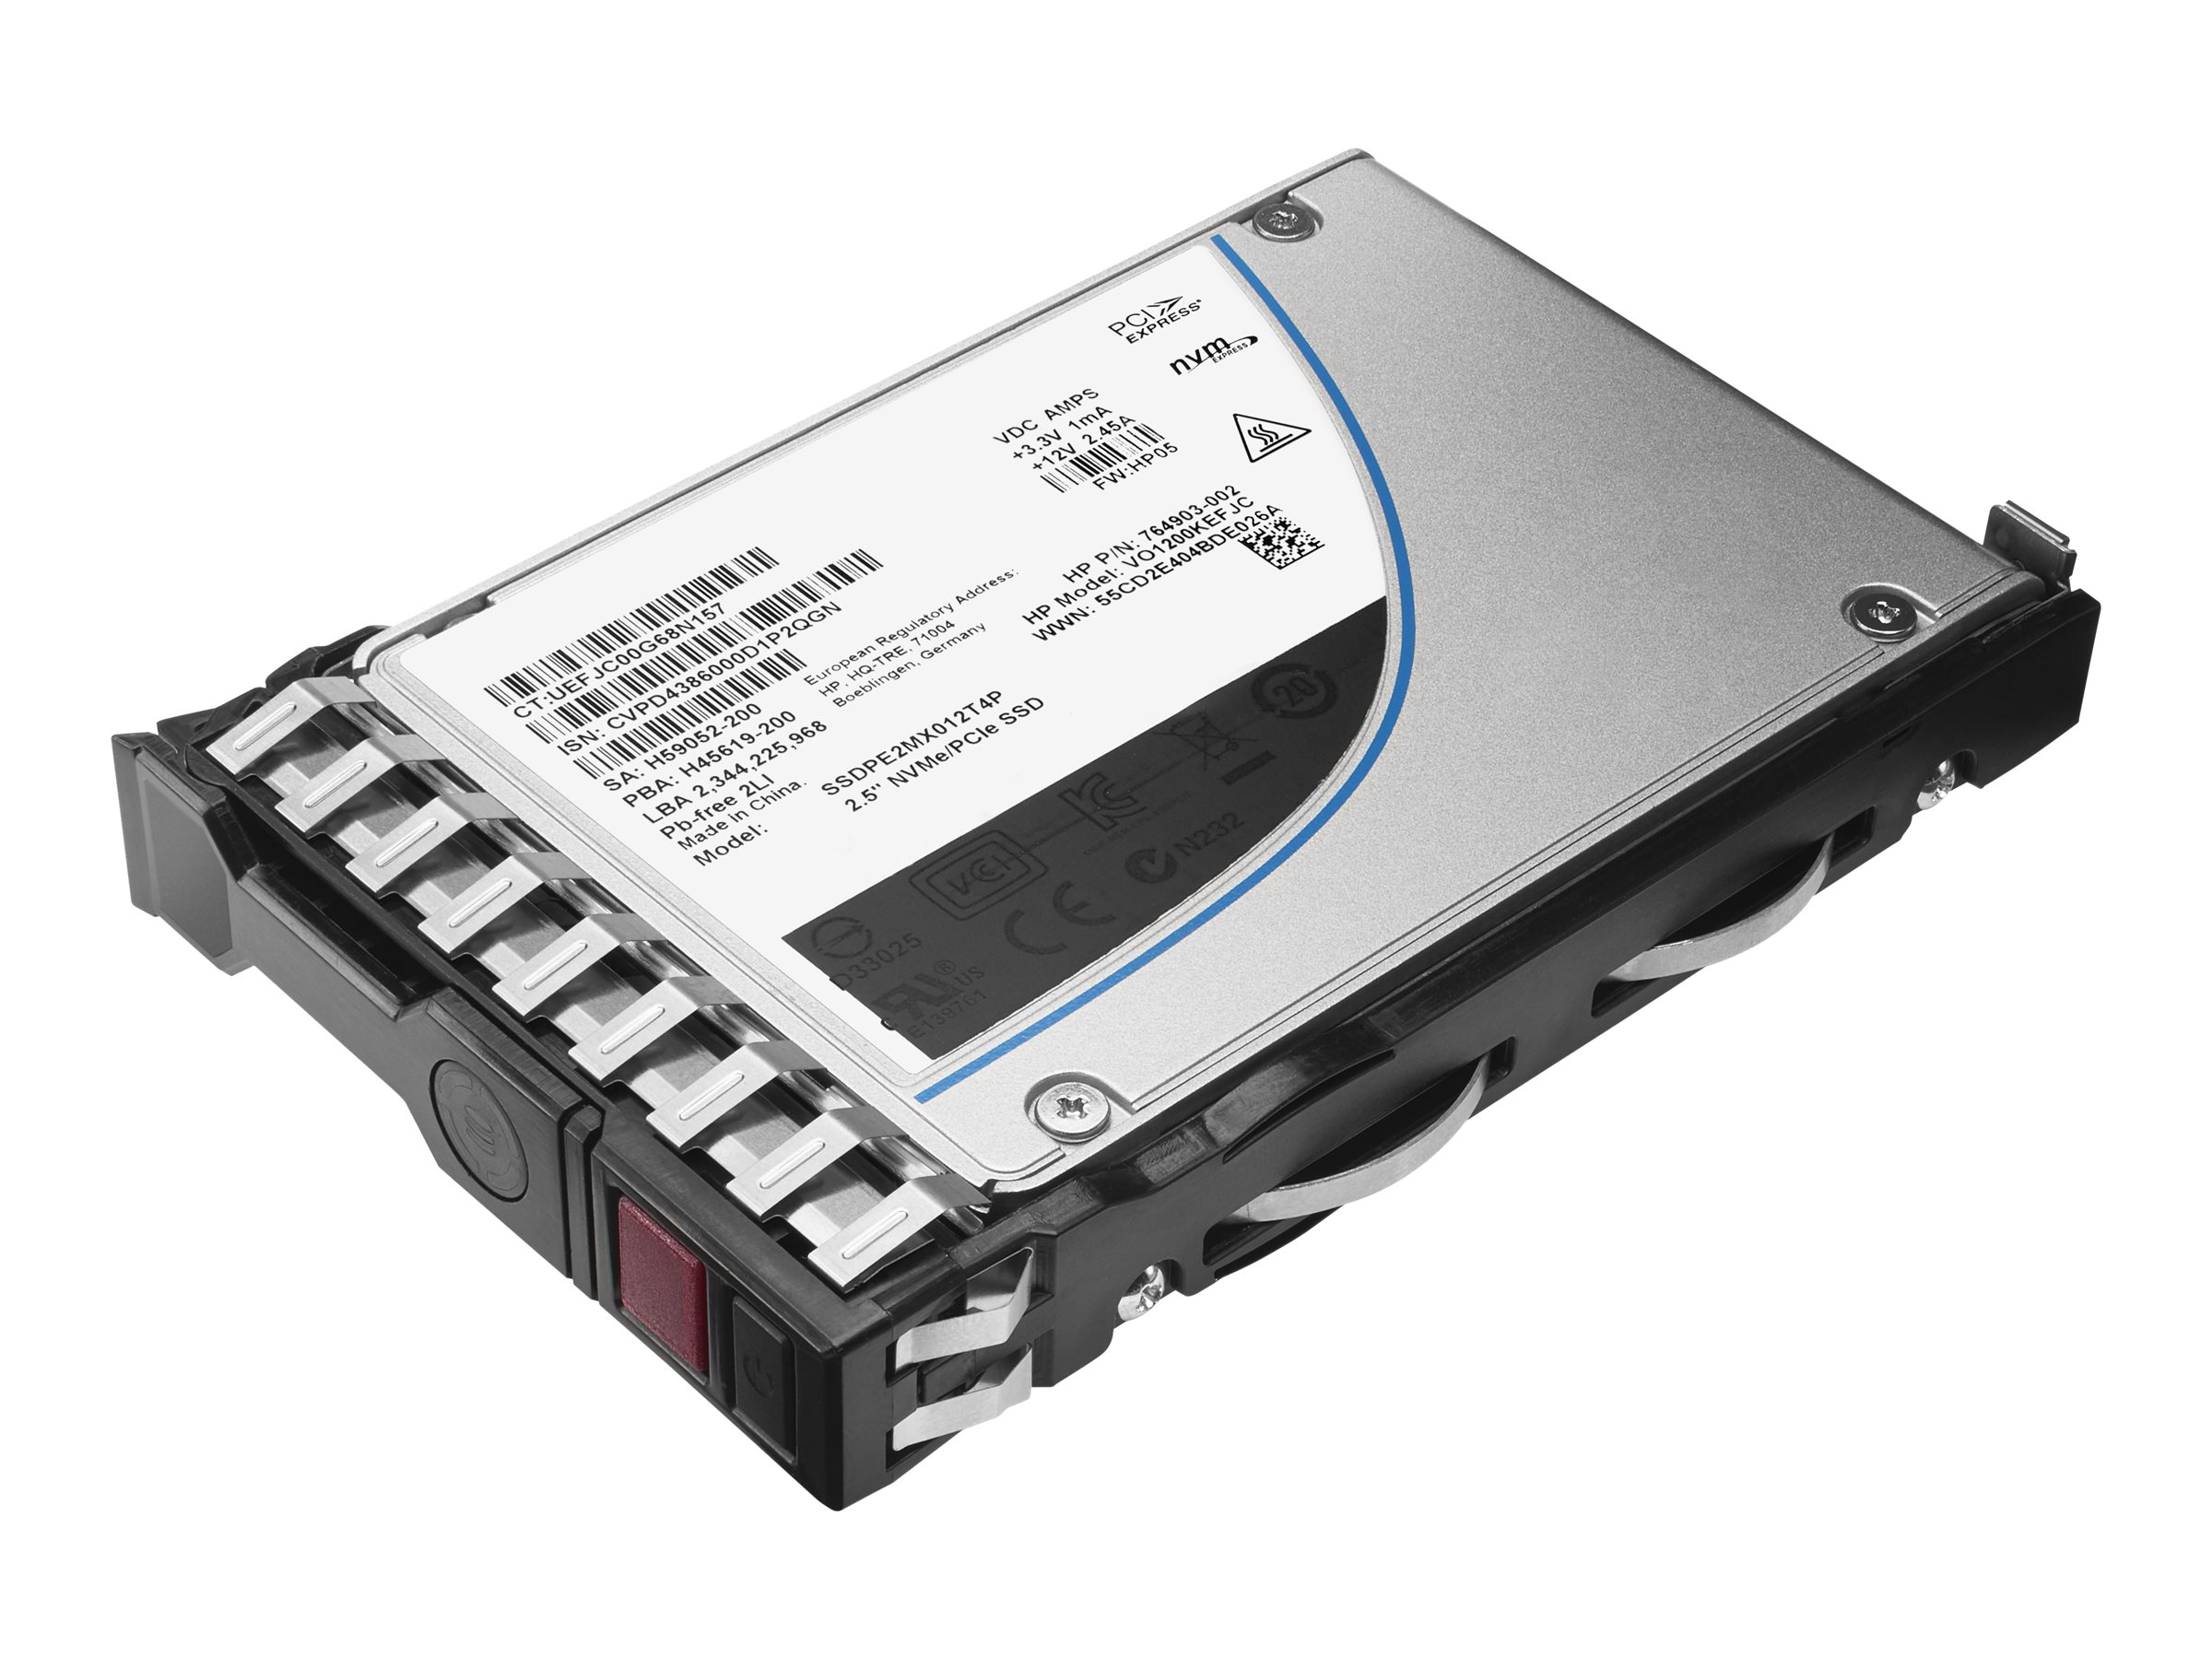 HPE 800GB SAS 12Gb s ME 2.5 EM H2 Solid State Drive